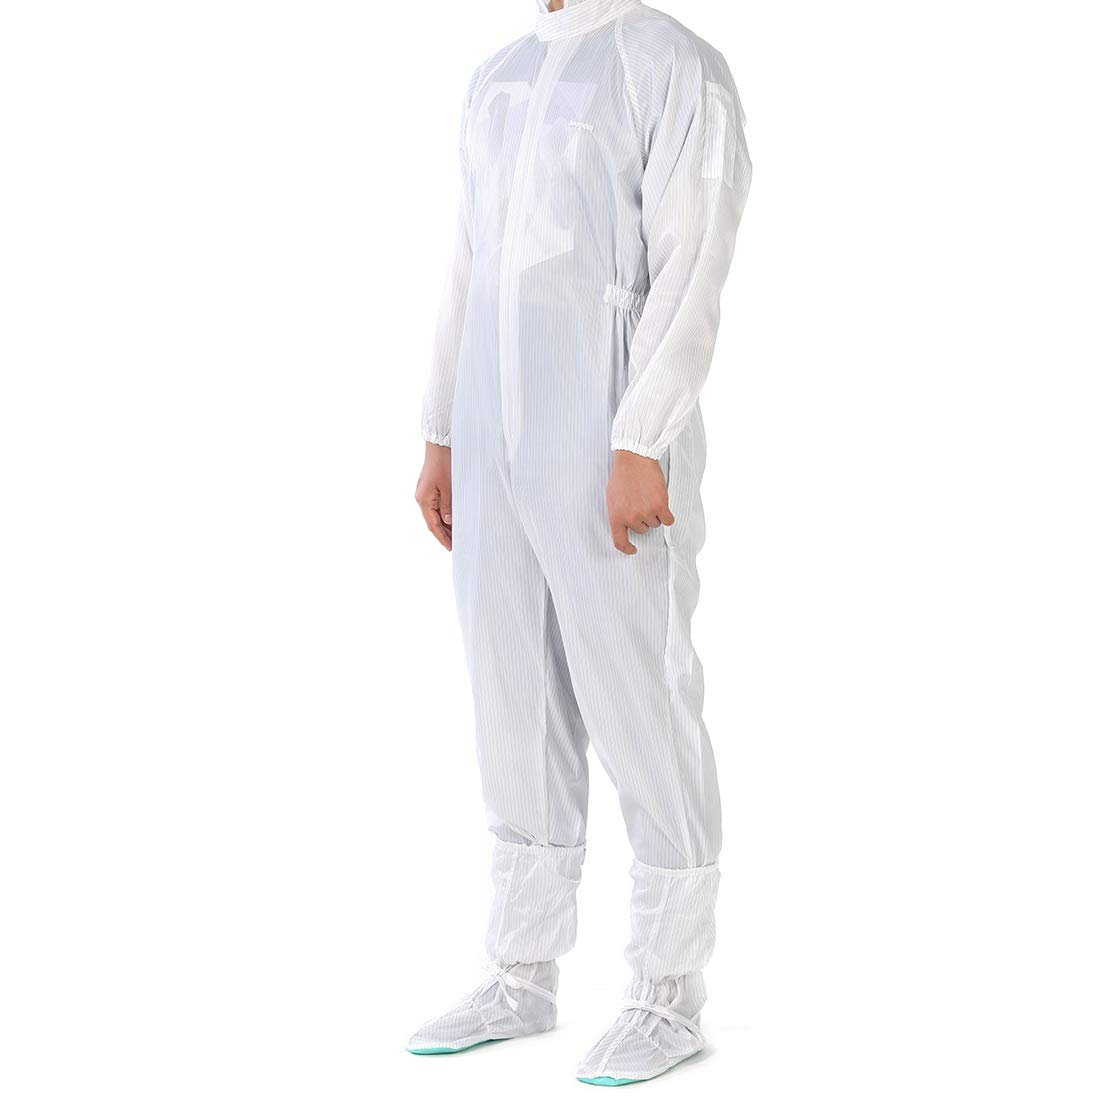 uxcell Dust Proof Anti-Static Jumpsuit Protection Coveralls XL-Size White with Sole by uxcell